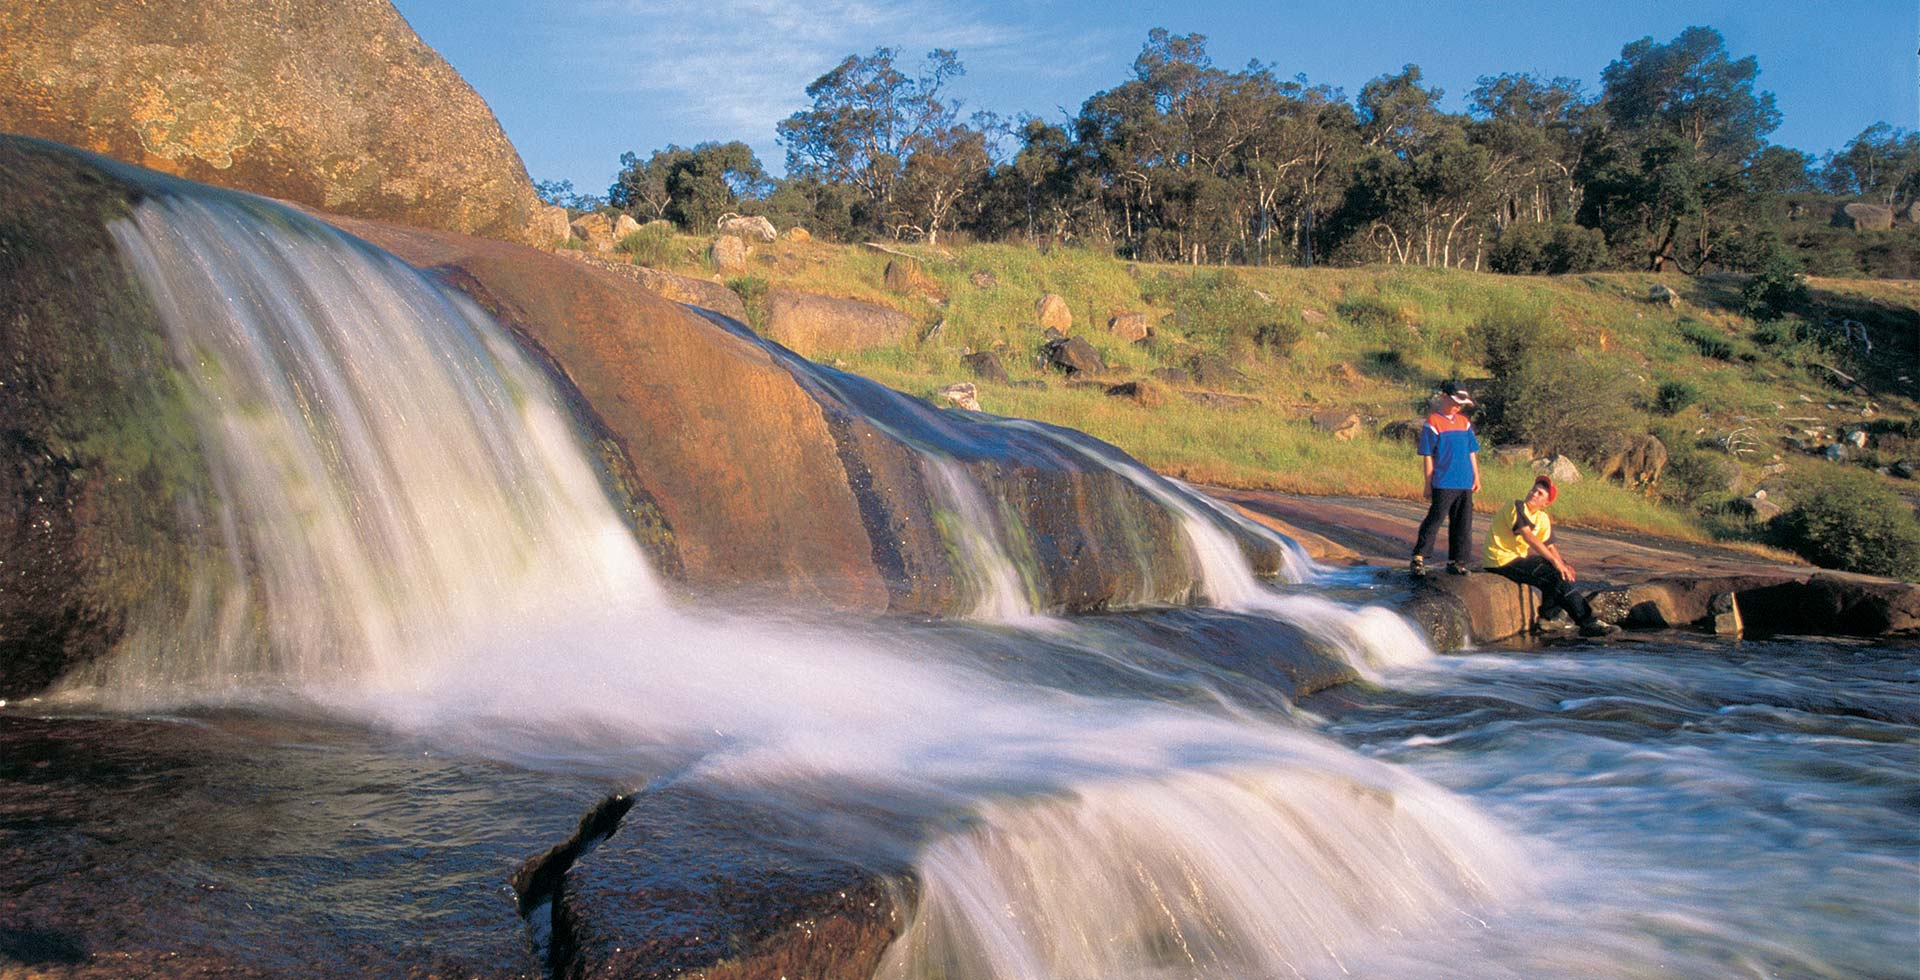 Blend with nature by the Hovea Falls in the Perth Hills